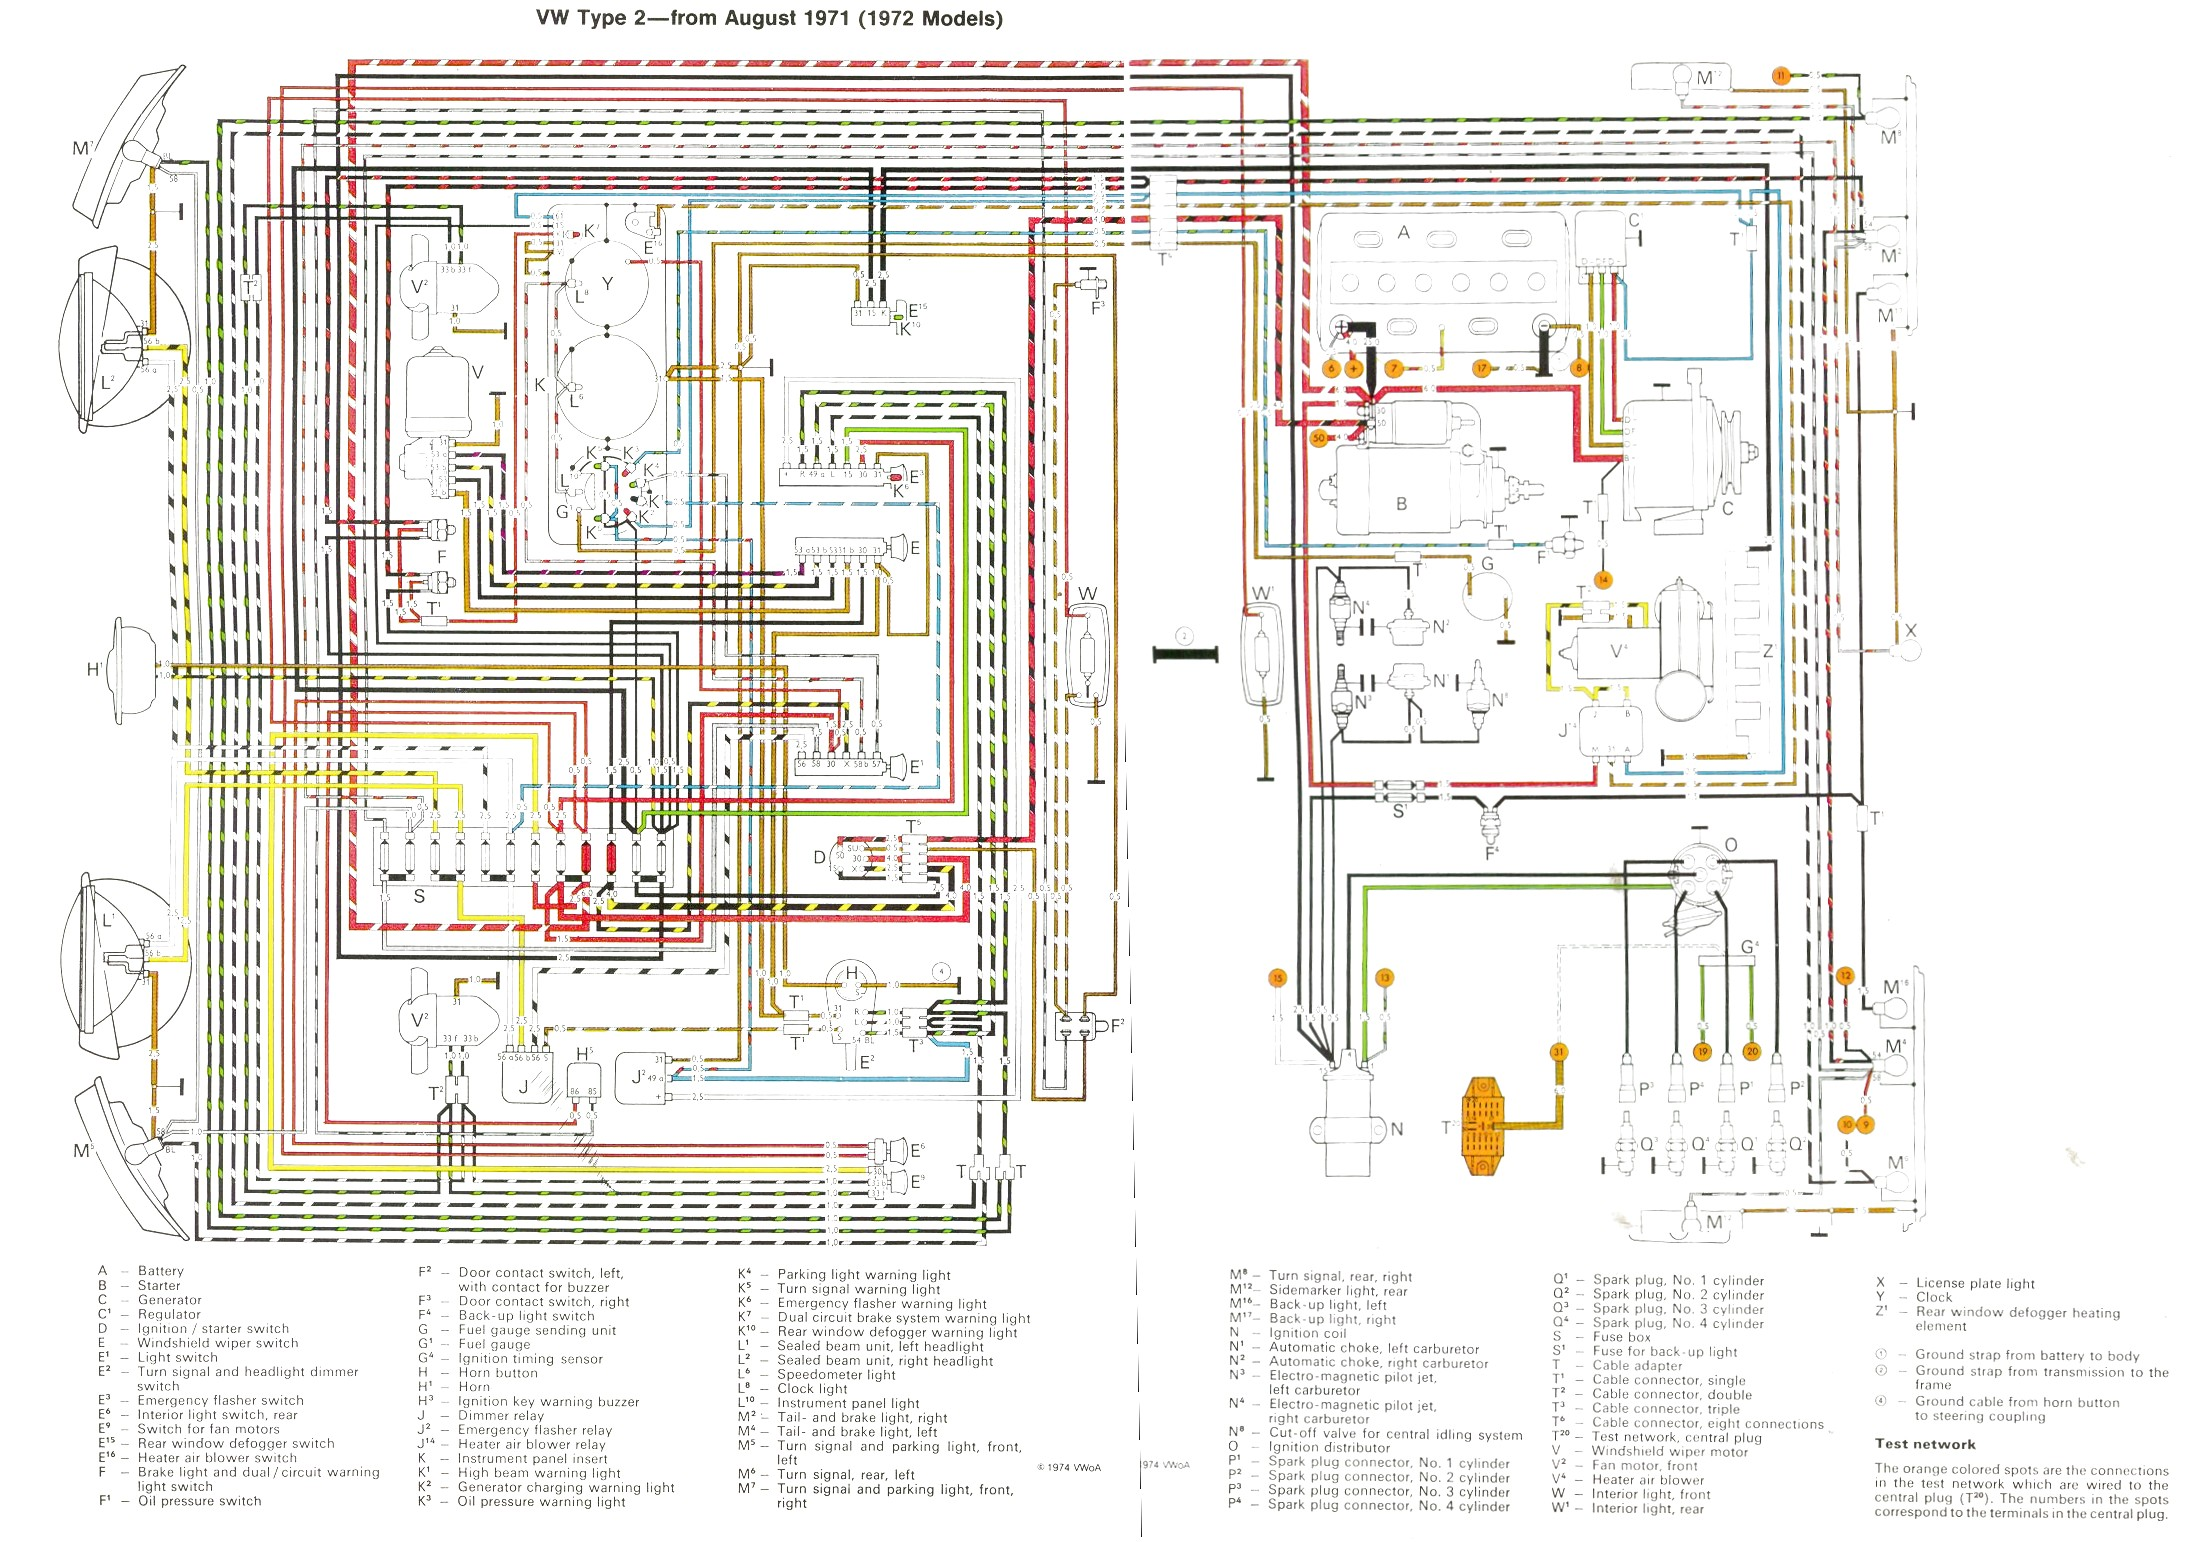 Vw Bus And Other Wiring Diagrams Diagram Along With 1990 Dodge Ram W250 Fuse Box Com